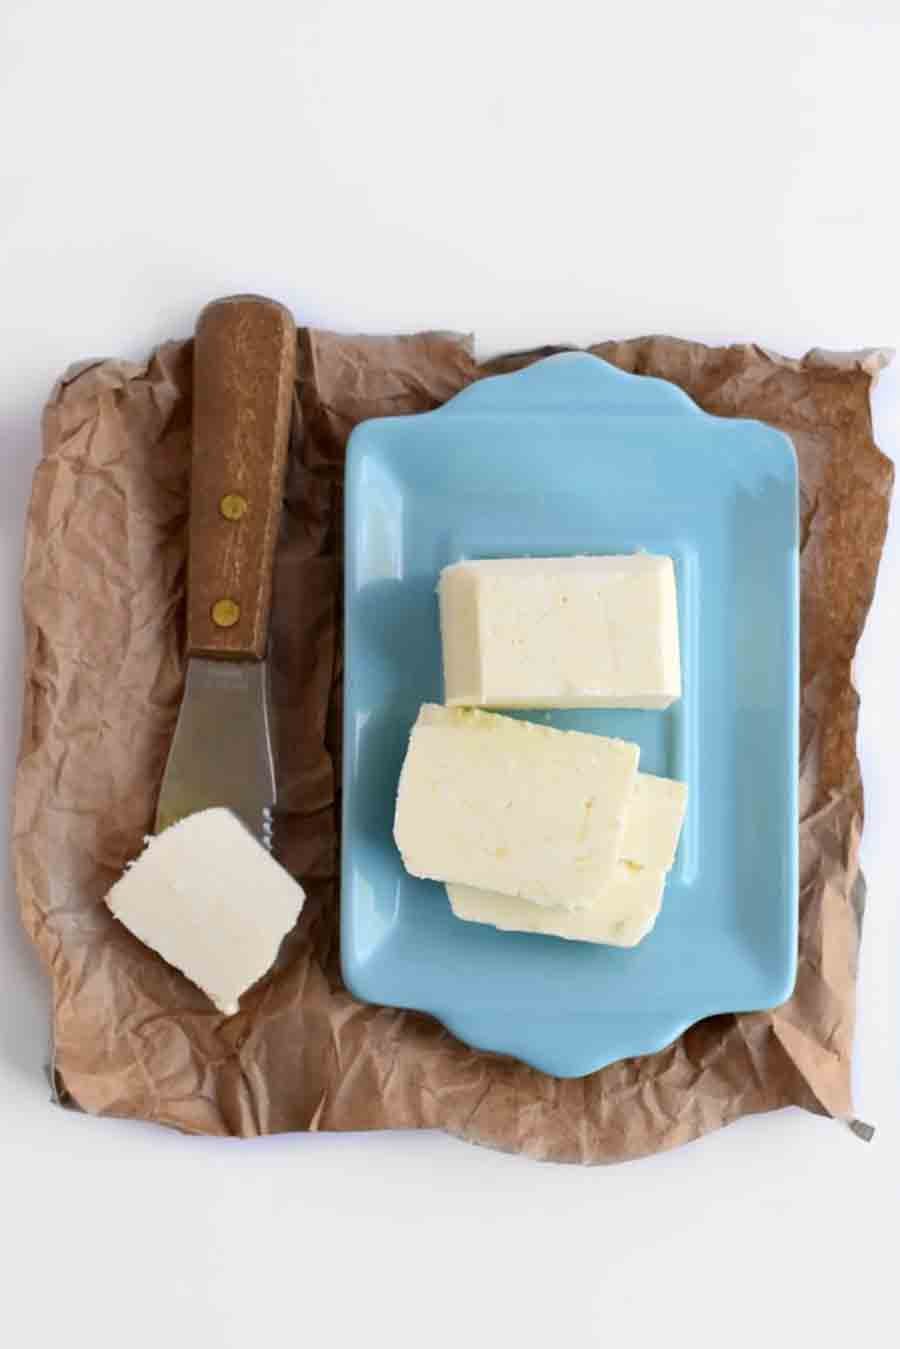 A blue dish of butter sitting on brown paper with a knife alongside